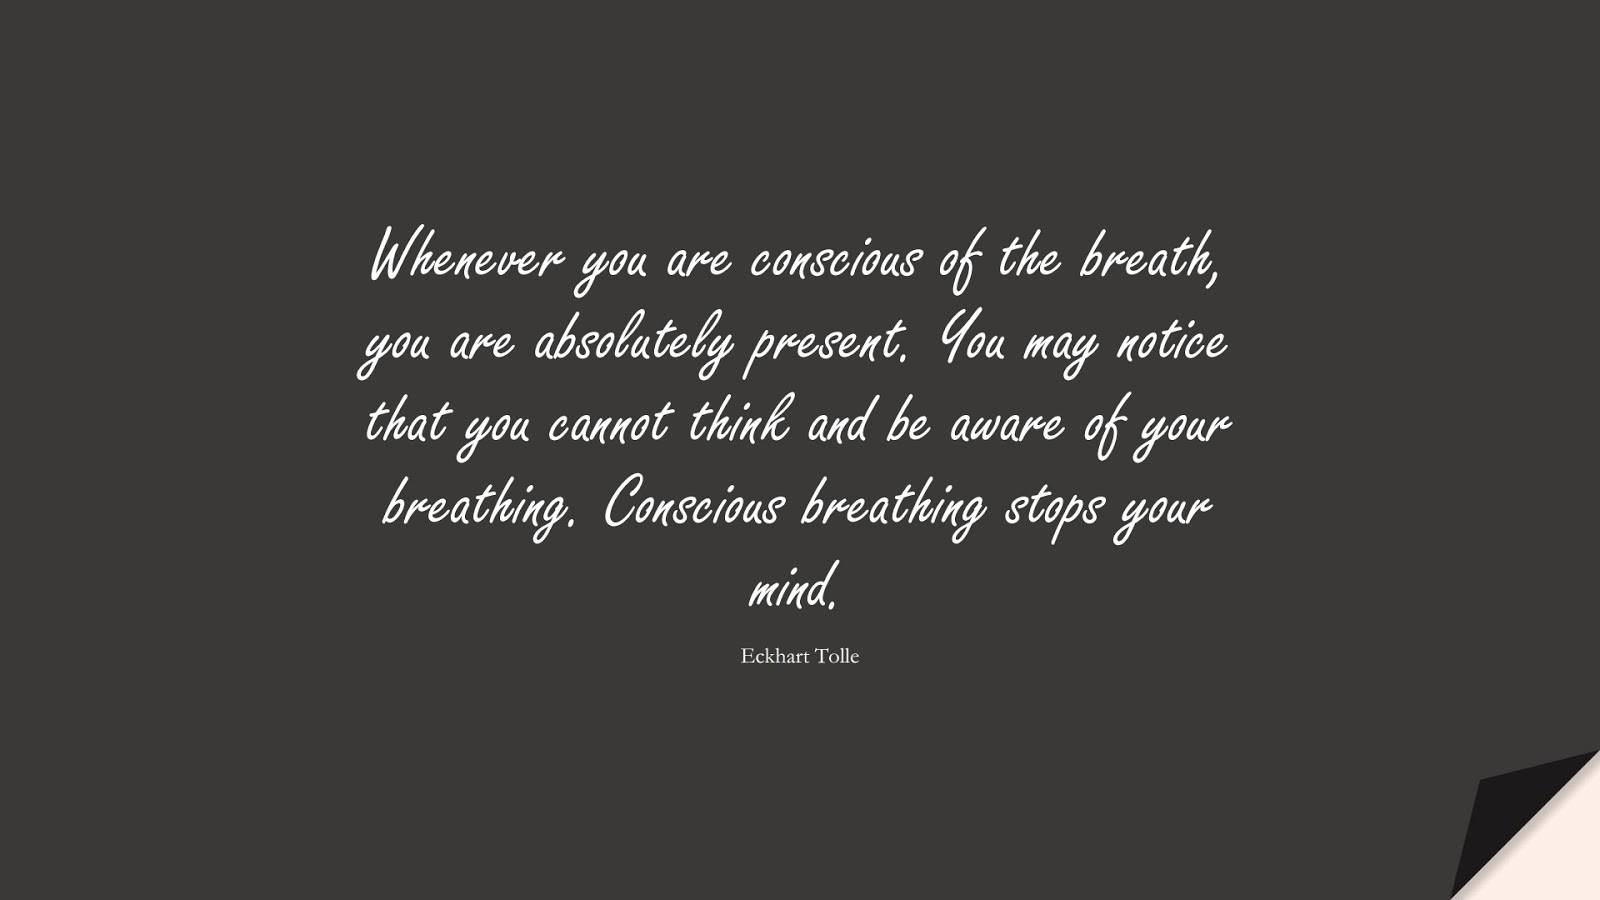 Whenever you are conscious of the breath, you are absolutely present. You may notice that you cannot think and be aware of your breathing. Conscious breathing stops your mind. (Eckhart Tolle);  #StressQuotes